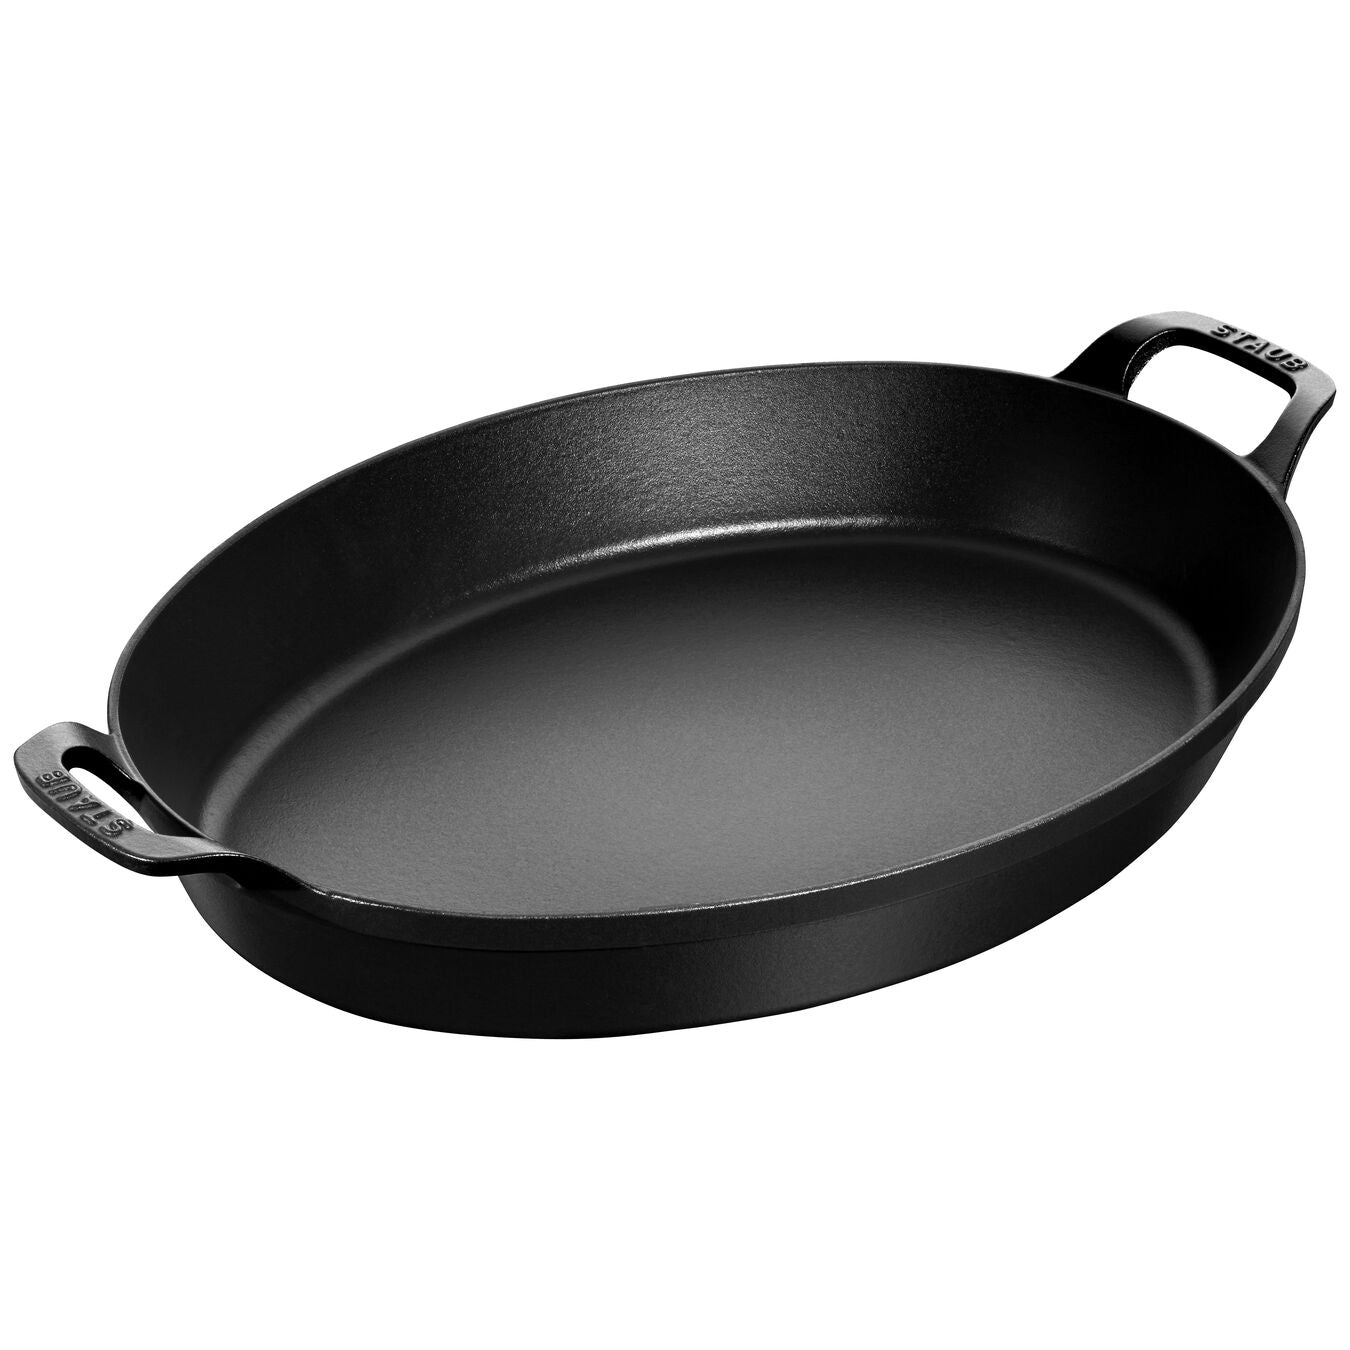 Oval Cast Iron Baking Dish - Matte Black